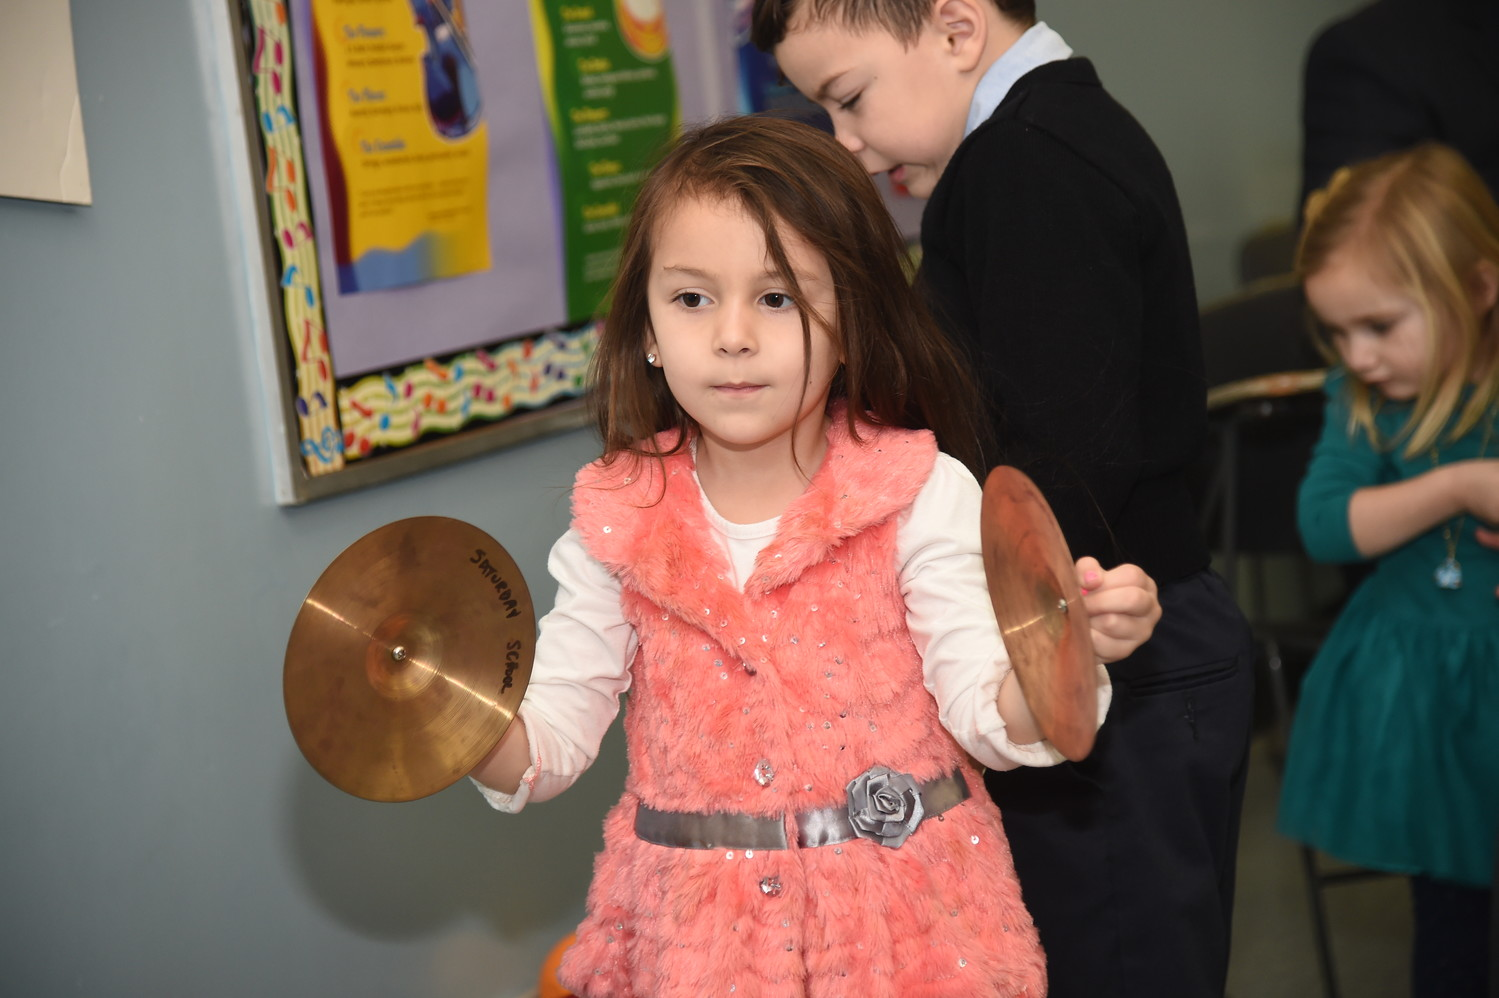 Madeleine Kucharnik, 4, tried playing an instrument at the Open House.